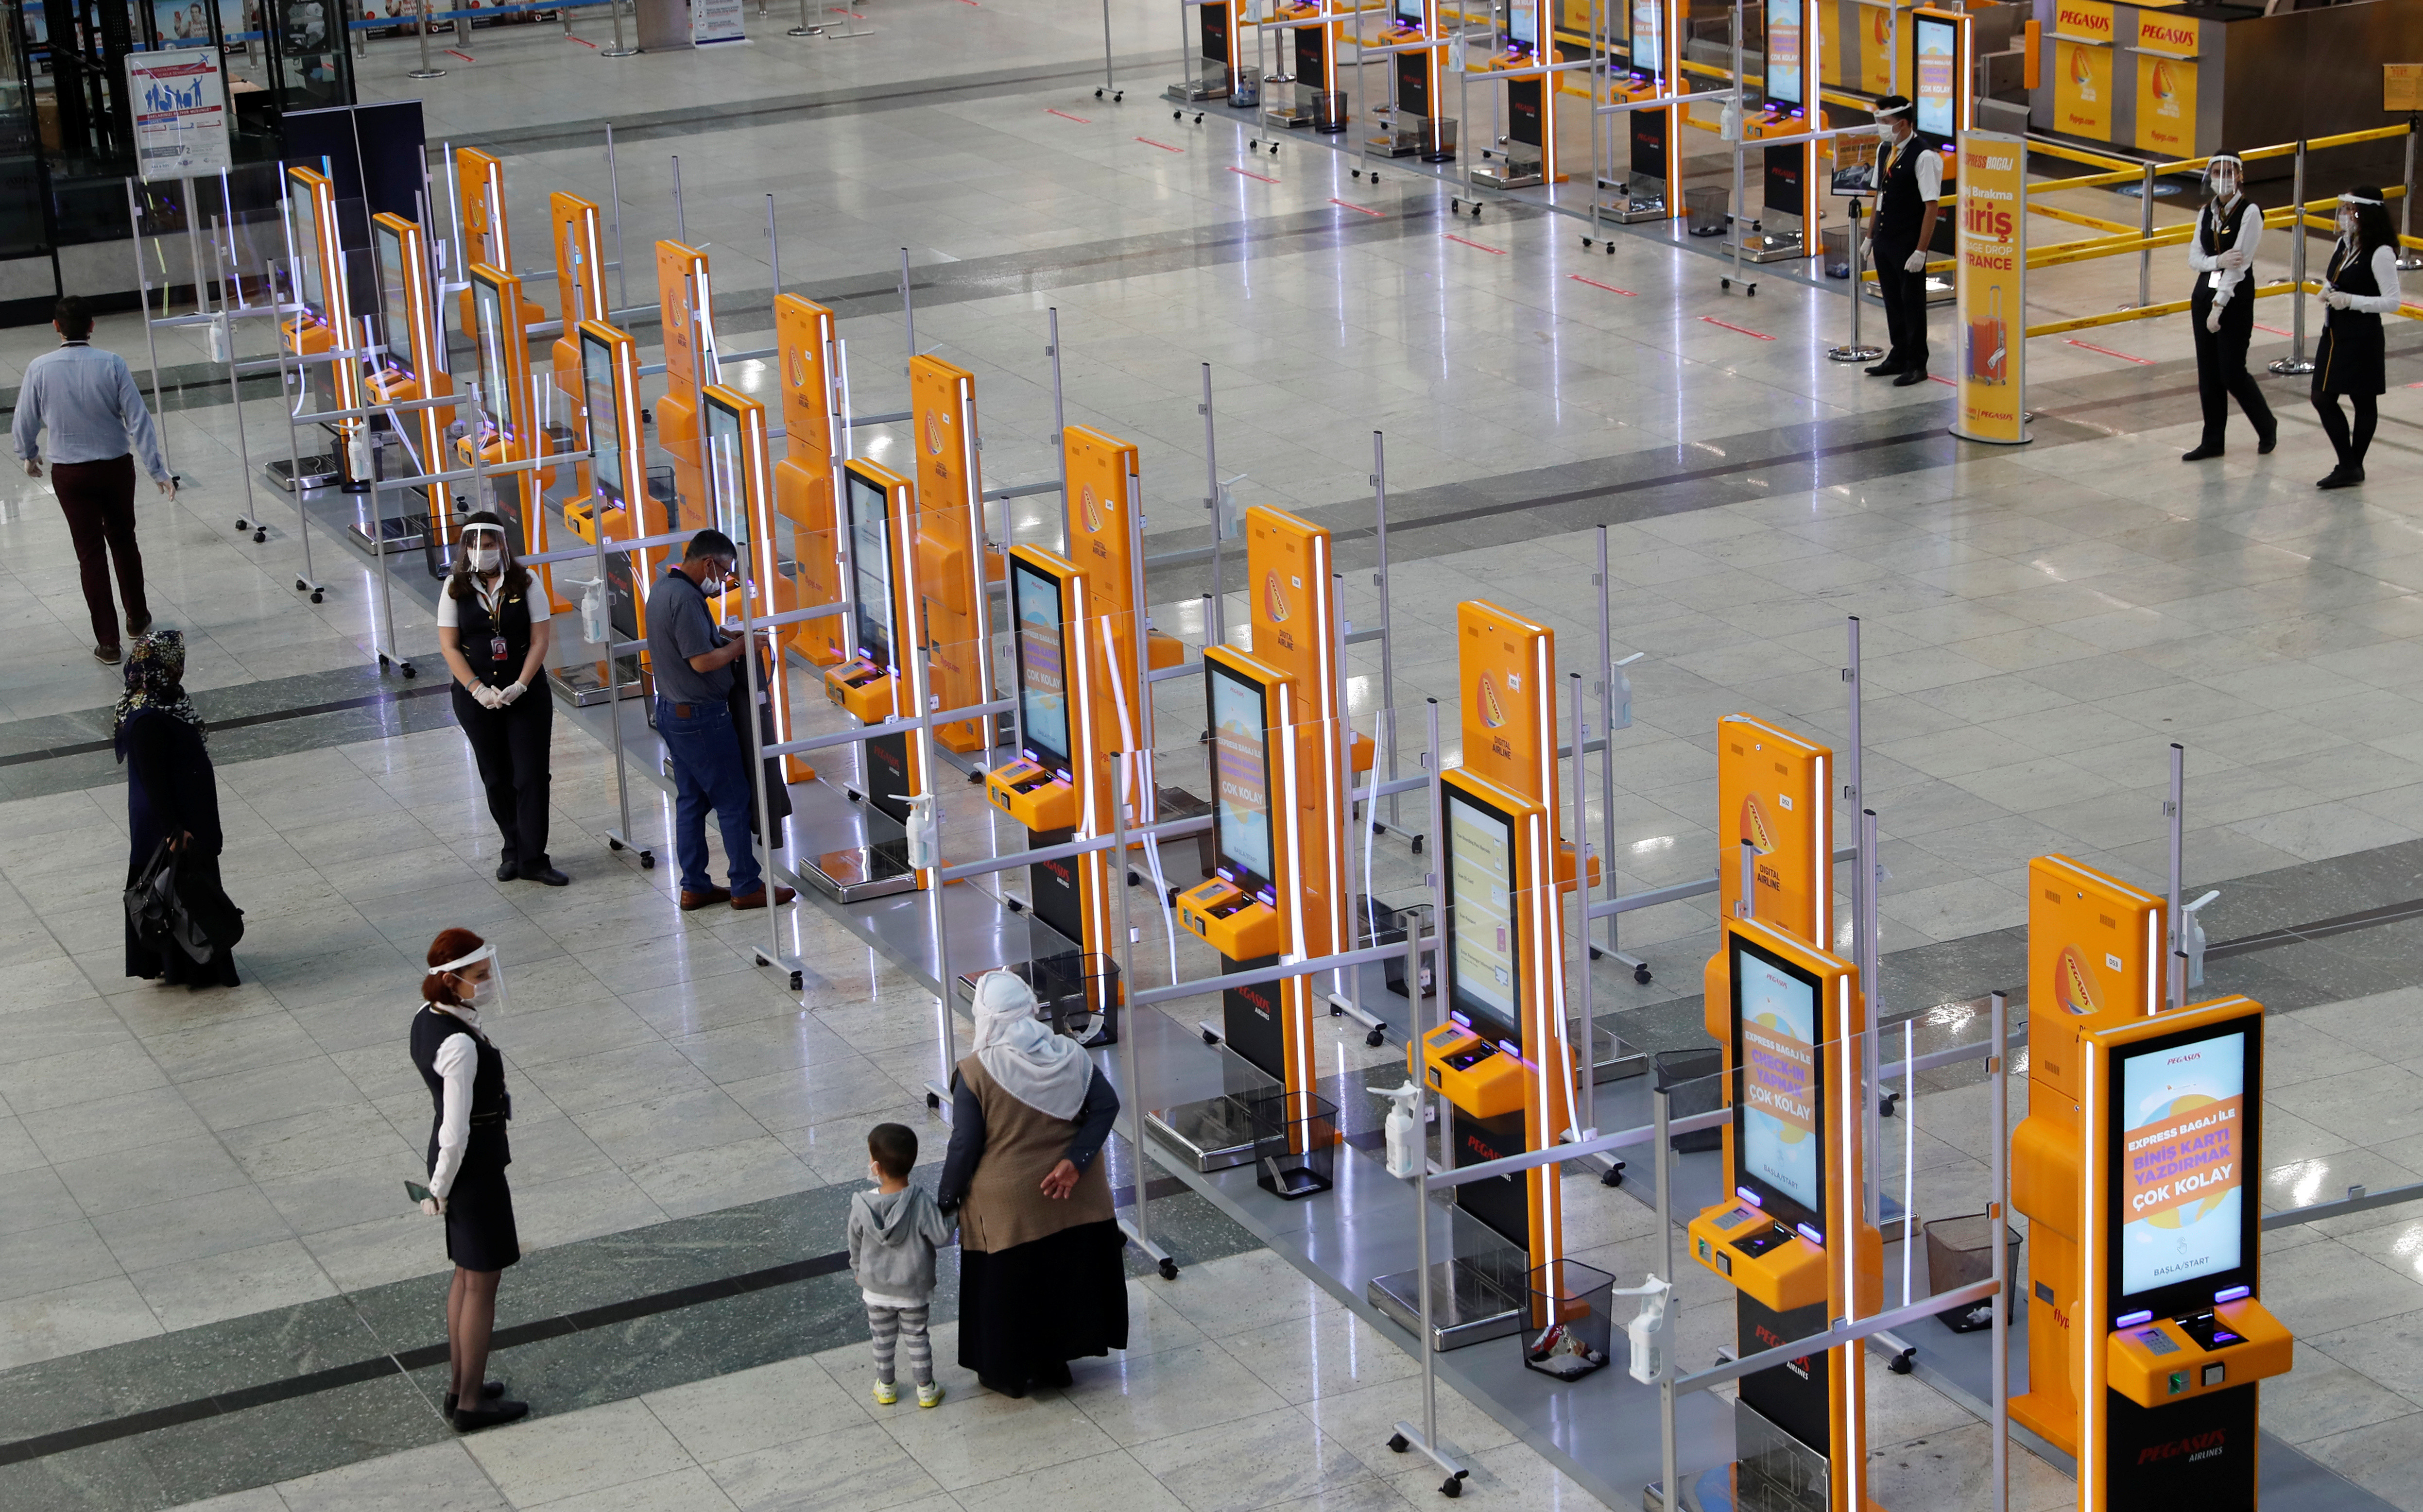 Pegasus Airlines self check-in counters are seen at the nearly empty domestic departure terminal of the Sabiha Gokcen Airport, following the coronavirus disease (COVID-19) outbreak, in Istanbul, Turkey June 11, 2020. REUTERS/Murad Sezer - RC2X6H9AXNI3